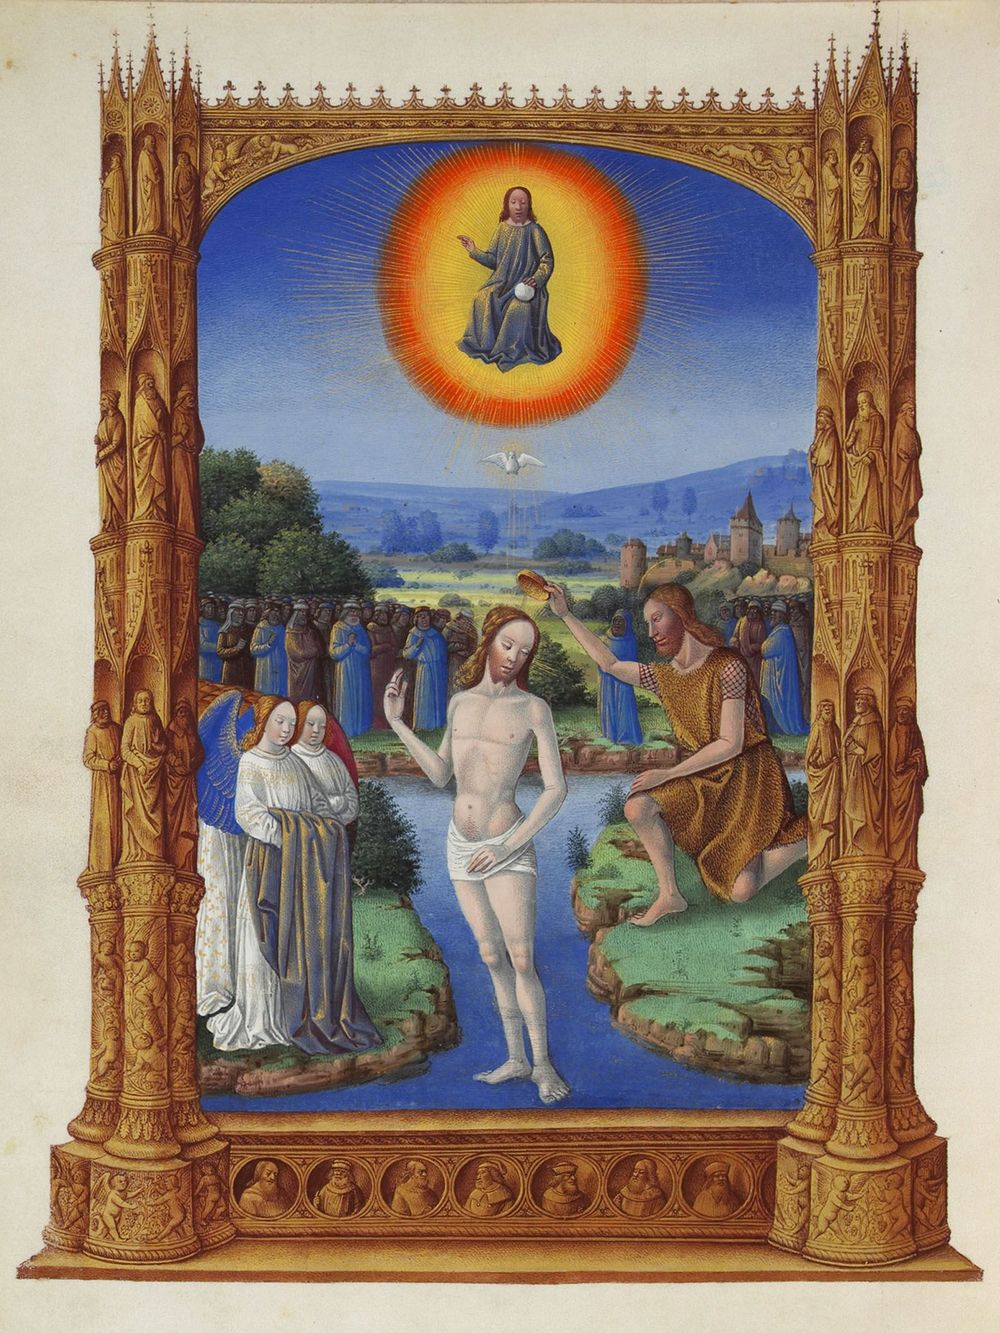 Folio_109v_-_The_Baptism_of_Christ.jpg